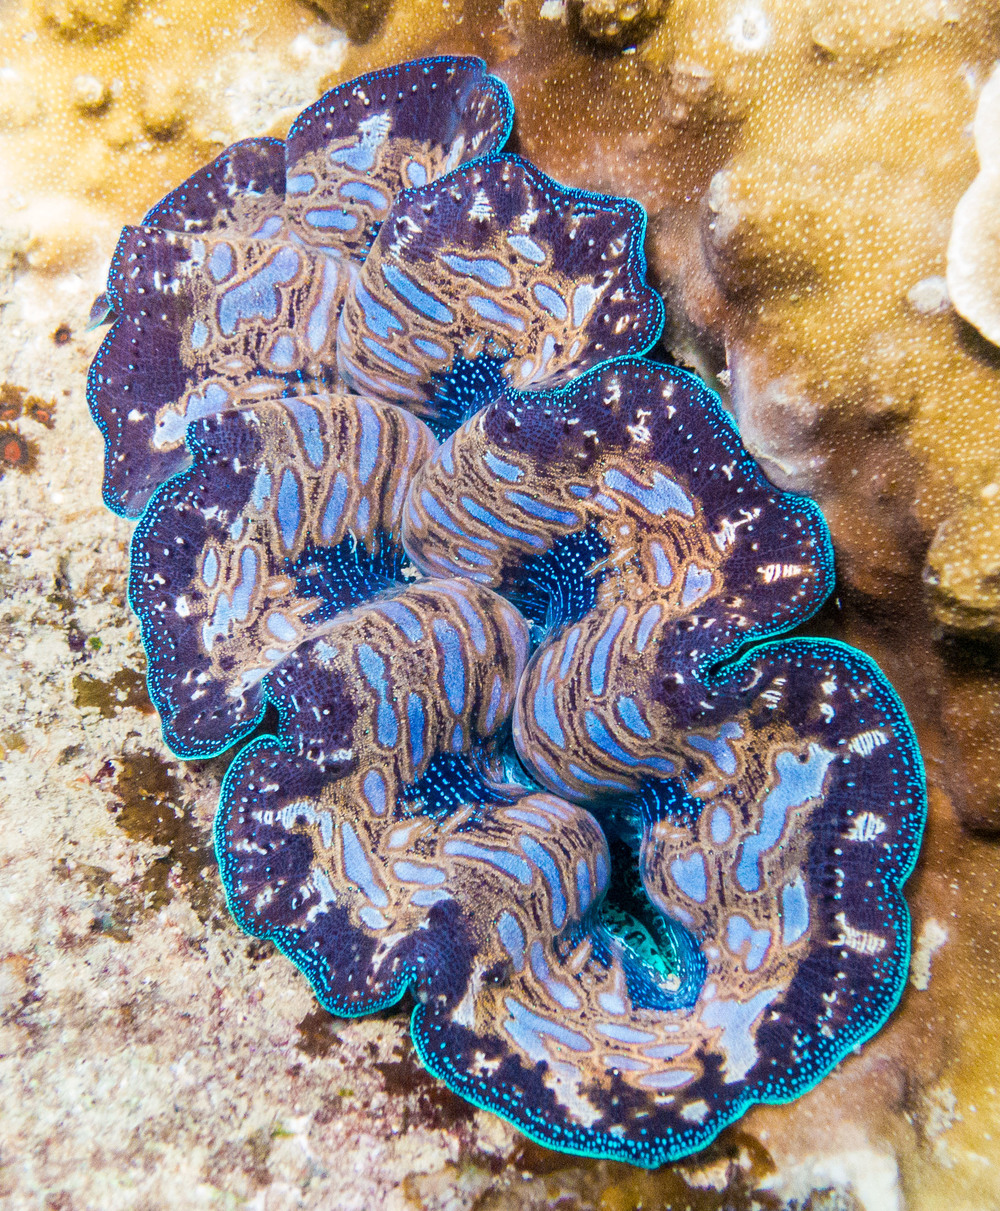 A exceptionally big & beautiful giant clam, this specimen was nearly half a metre long.